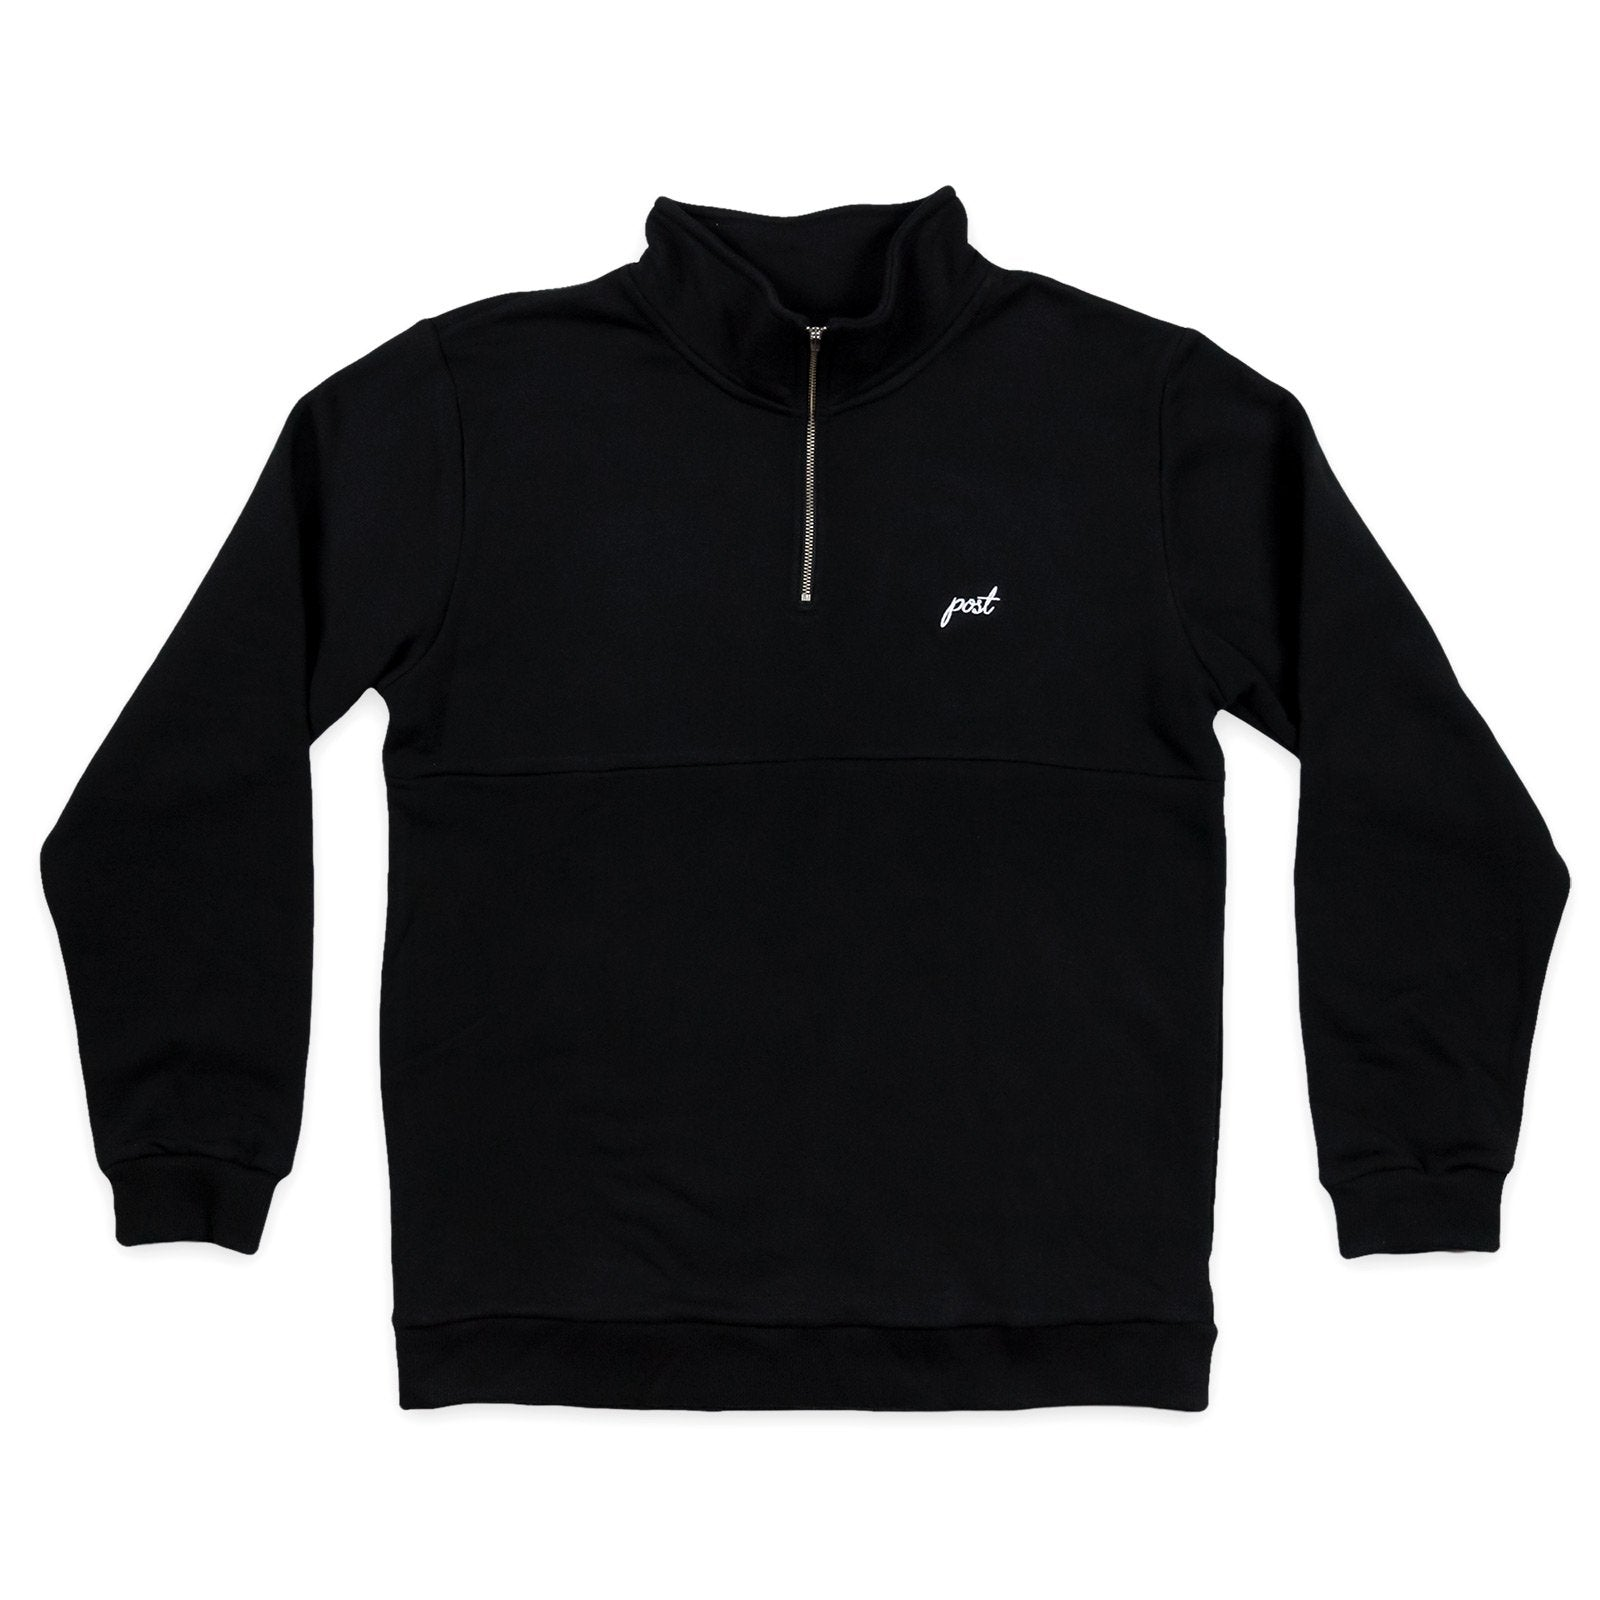 Post Shuffleboard Half zip Black